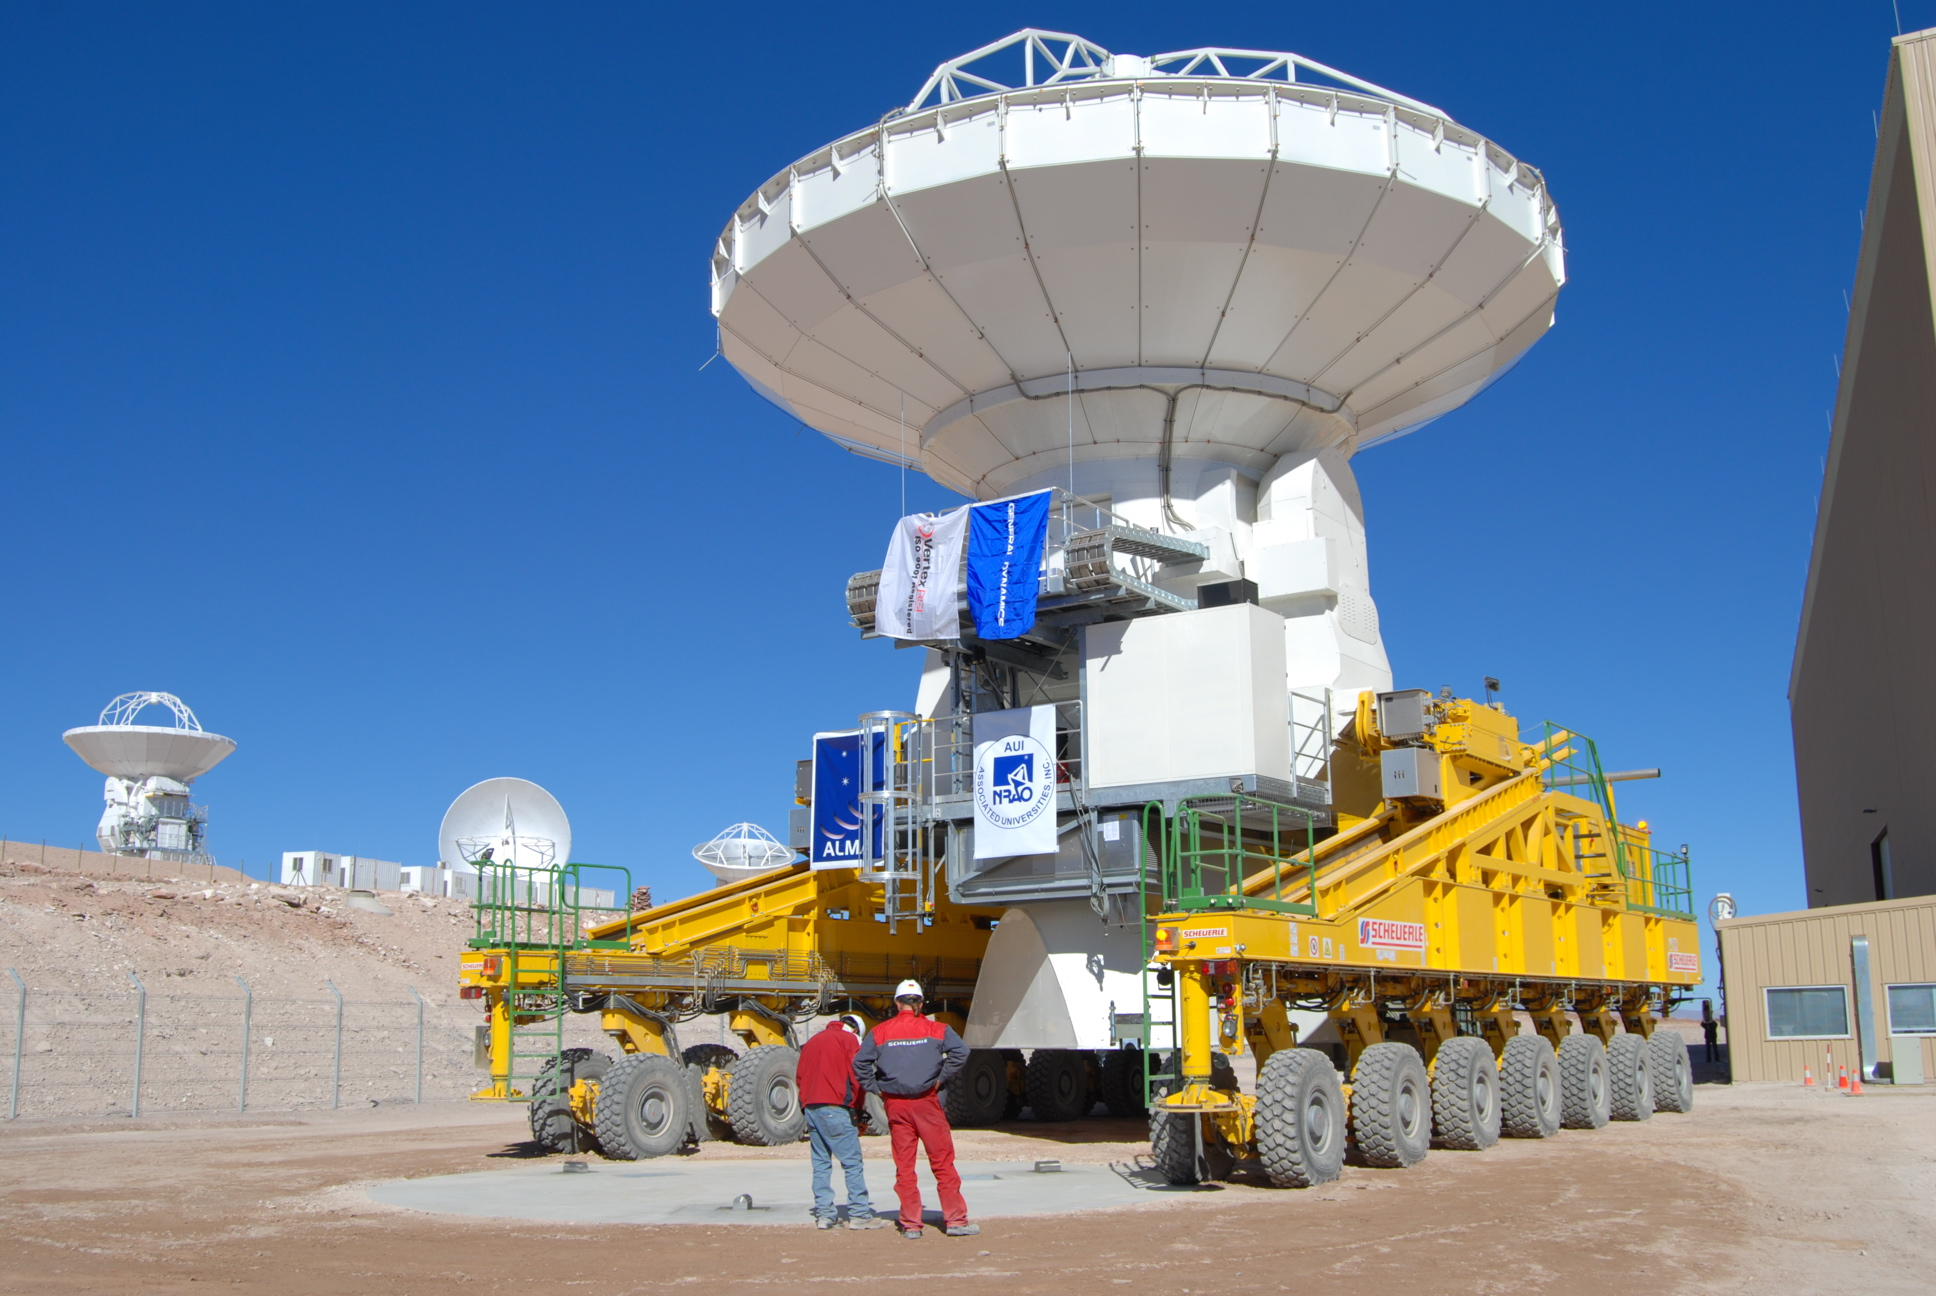 VertexRSI2 moved from SEF Assembly Building to an SEF antenna station by ALMA Transporter